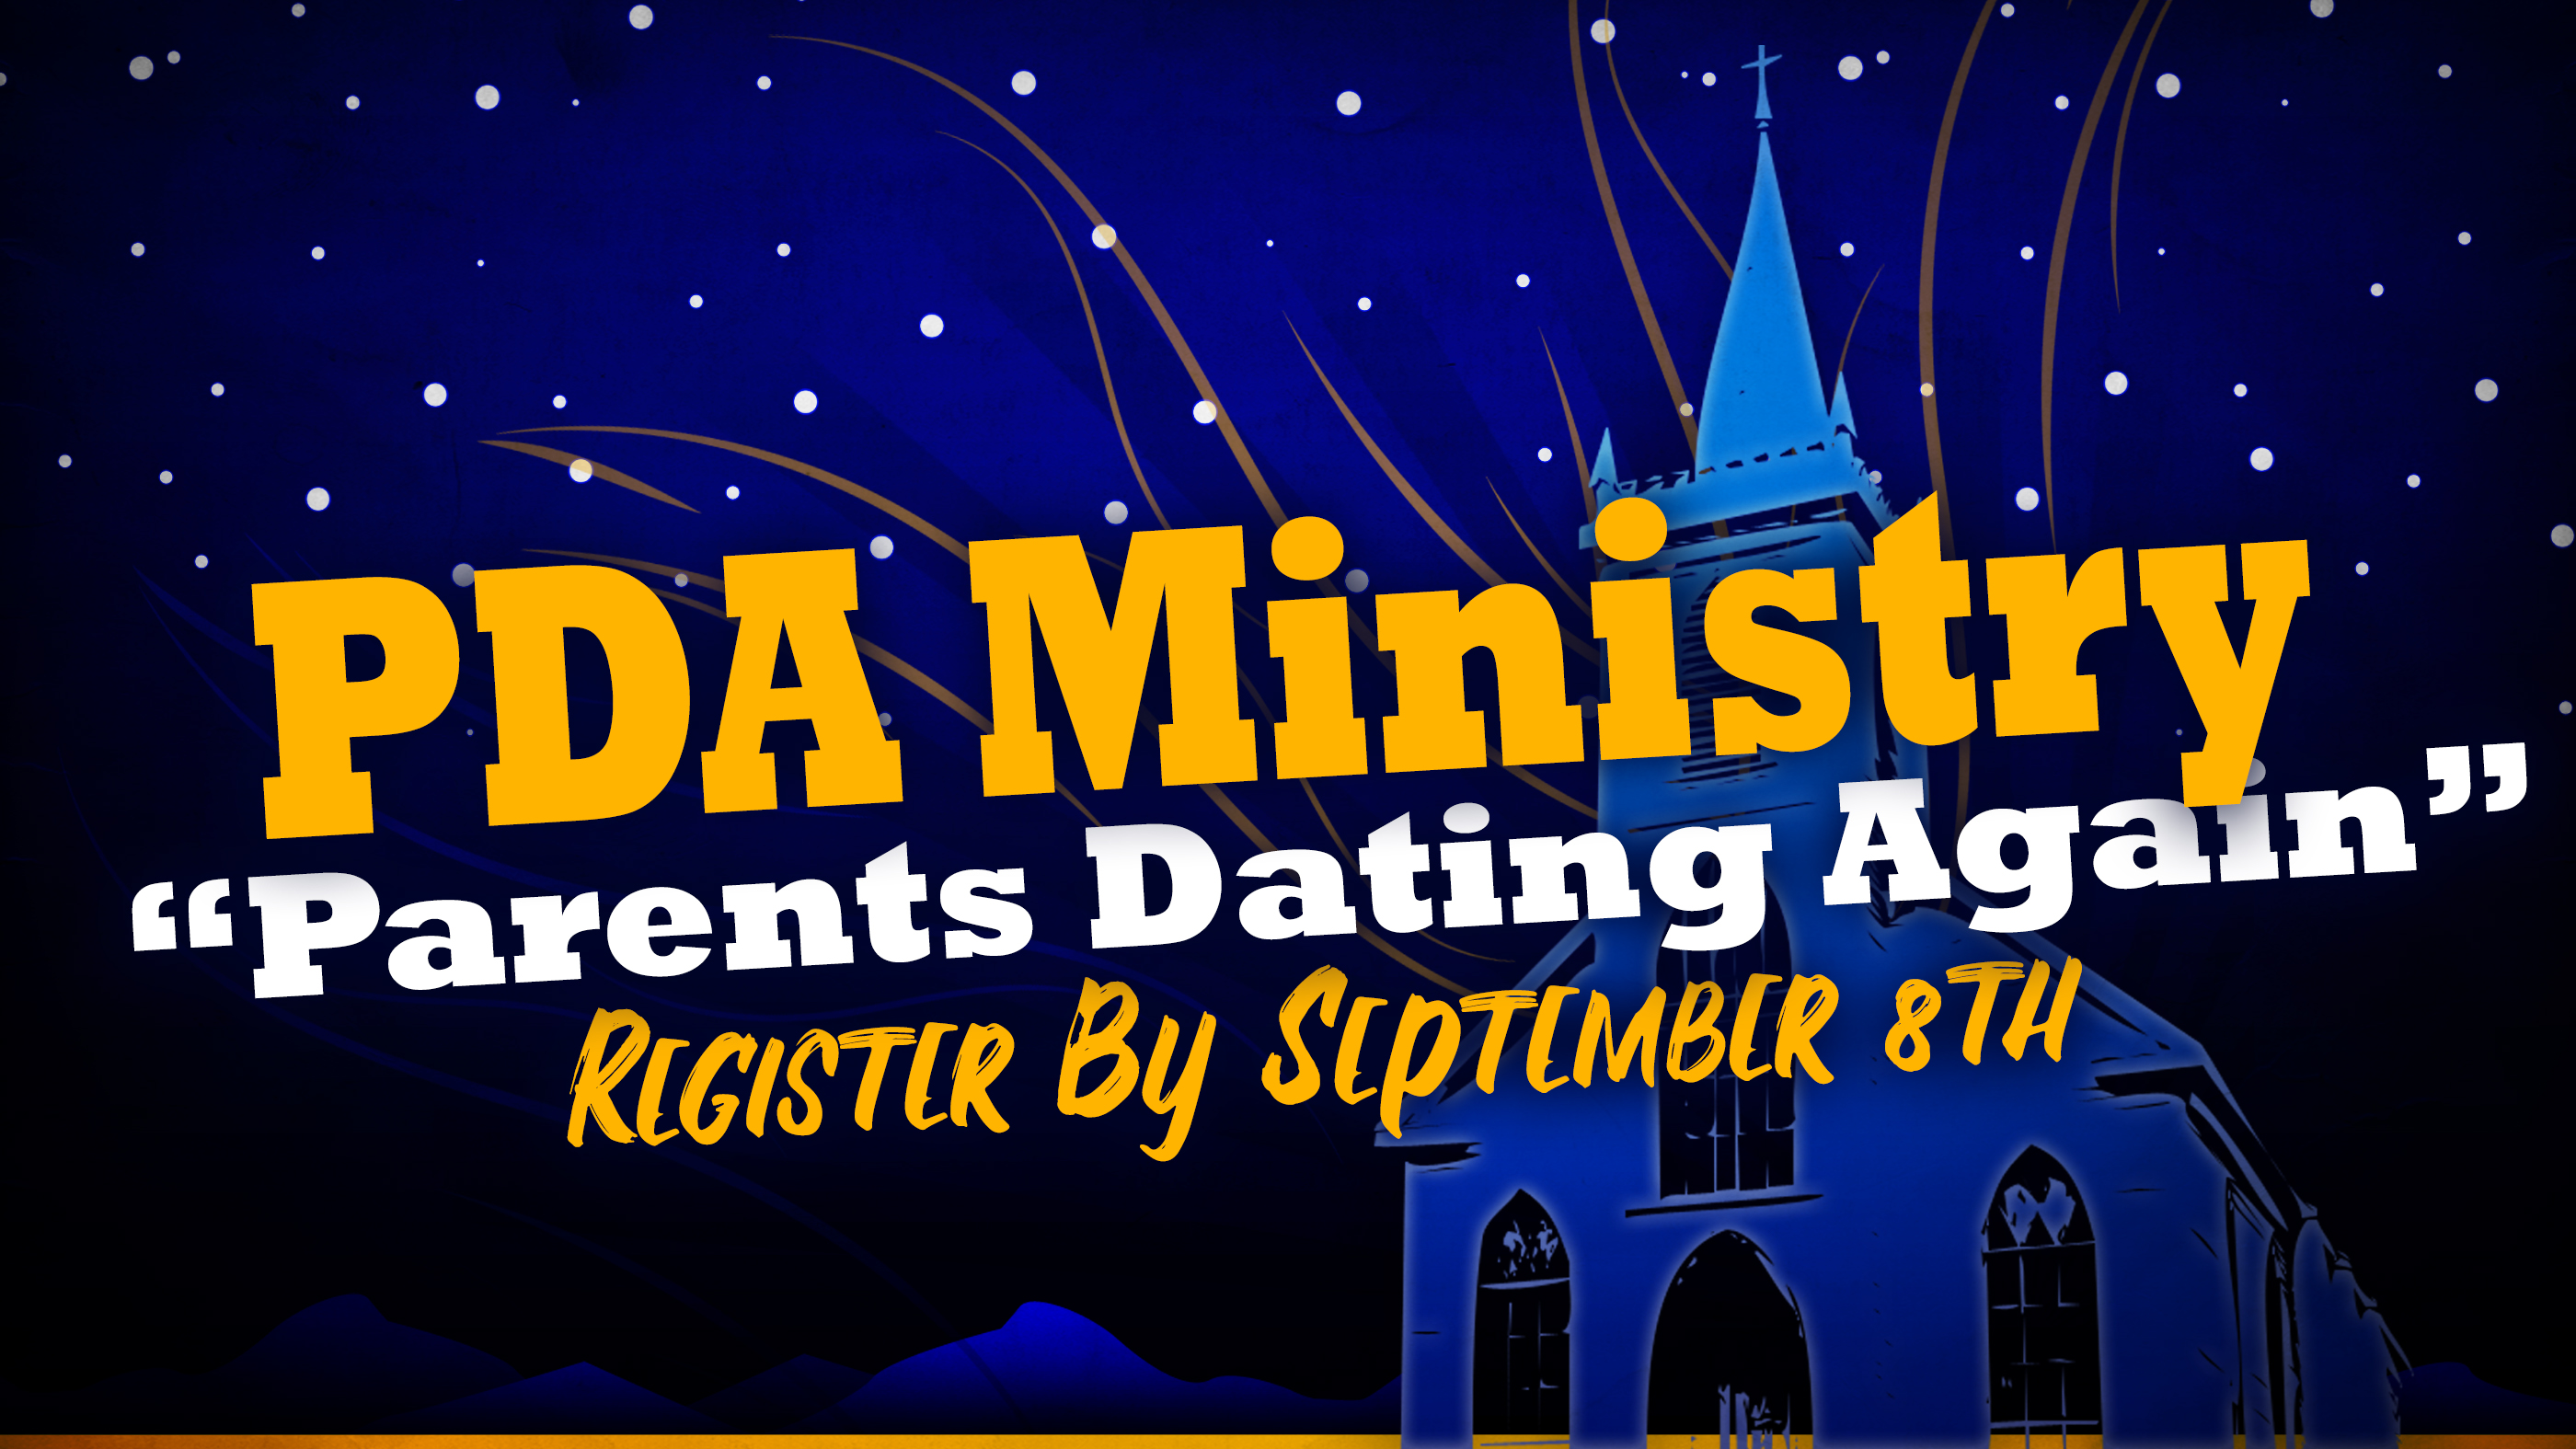 PDA Ministry